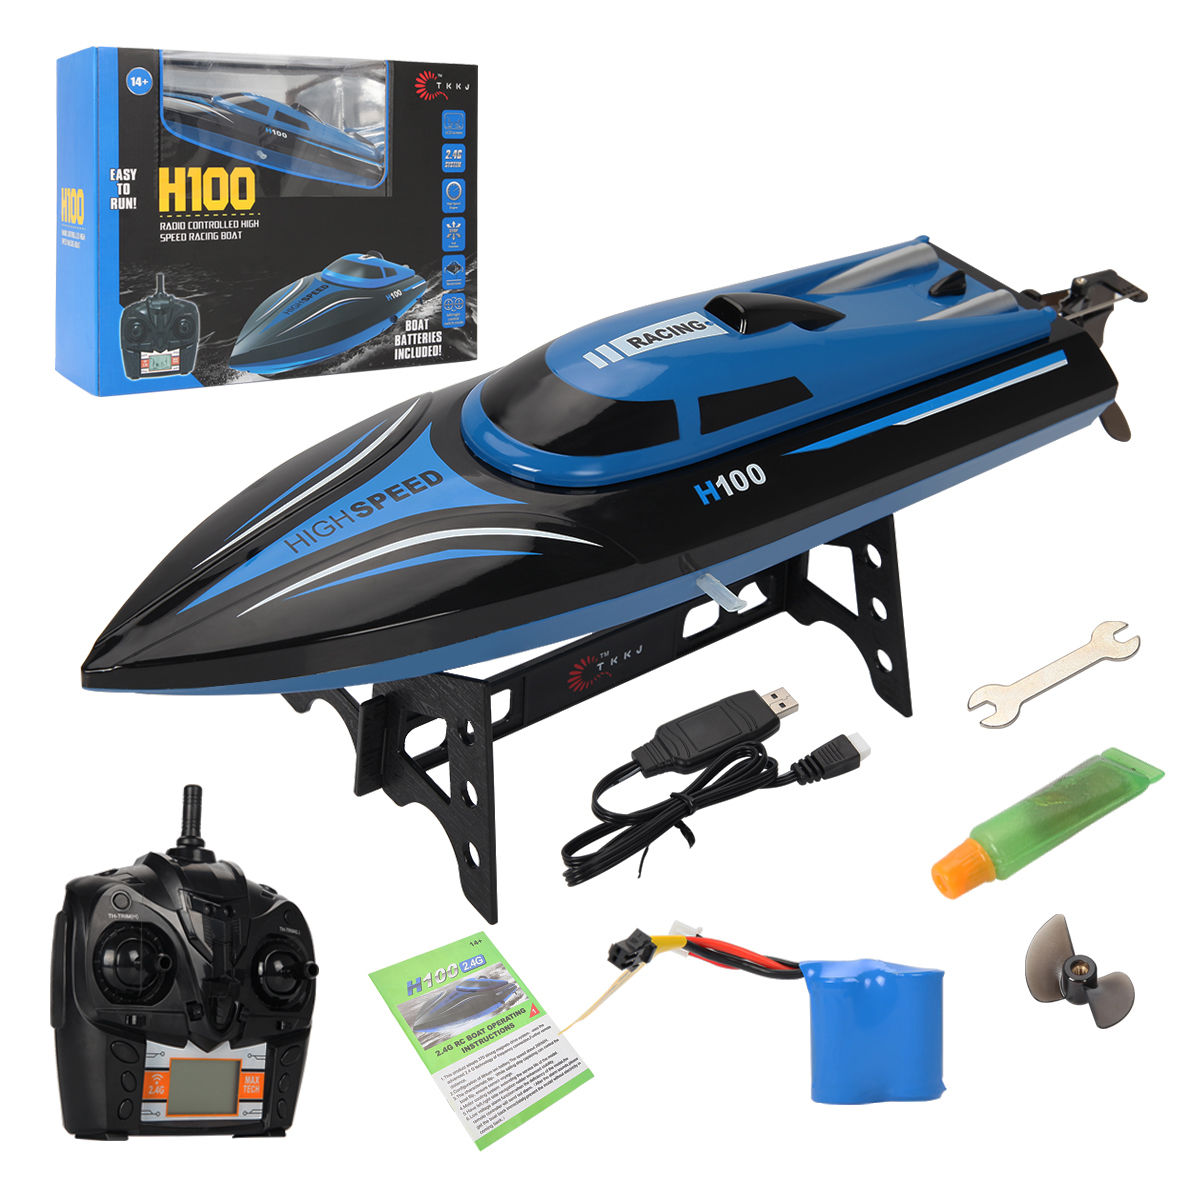 Costway H101 2.4G RC High Speed Racing Boat 180 degree Flip Radio Controlled Electric Toy... by Costway